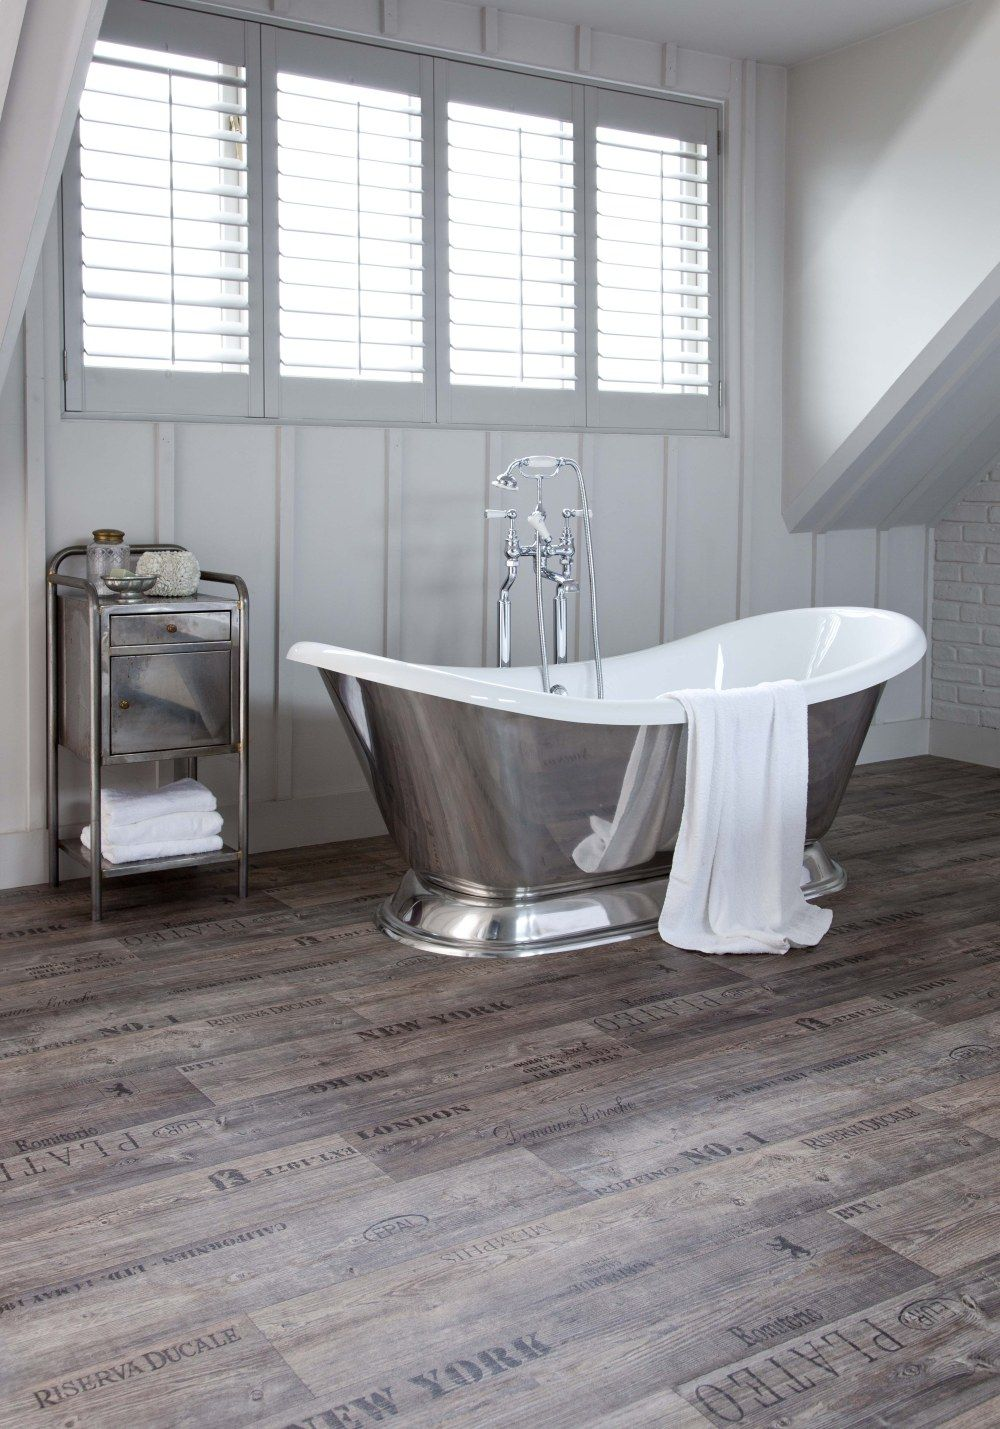 A Rustic Bathroom With A Modern Twist Vinyl Flooring Crates Writing Rustic Interior